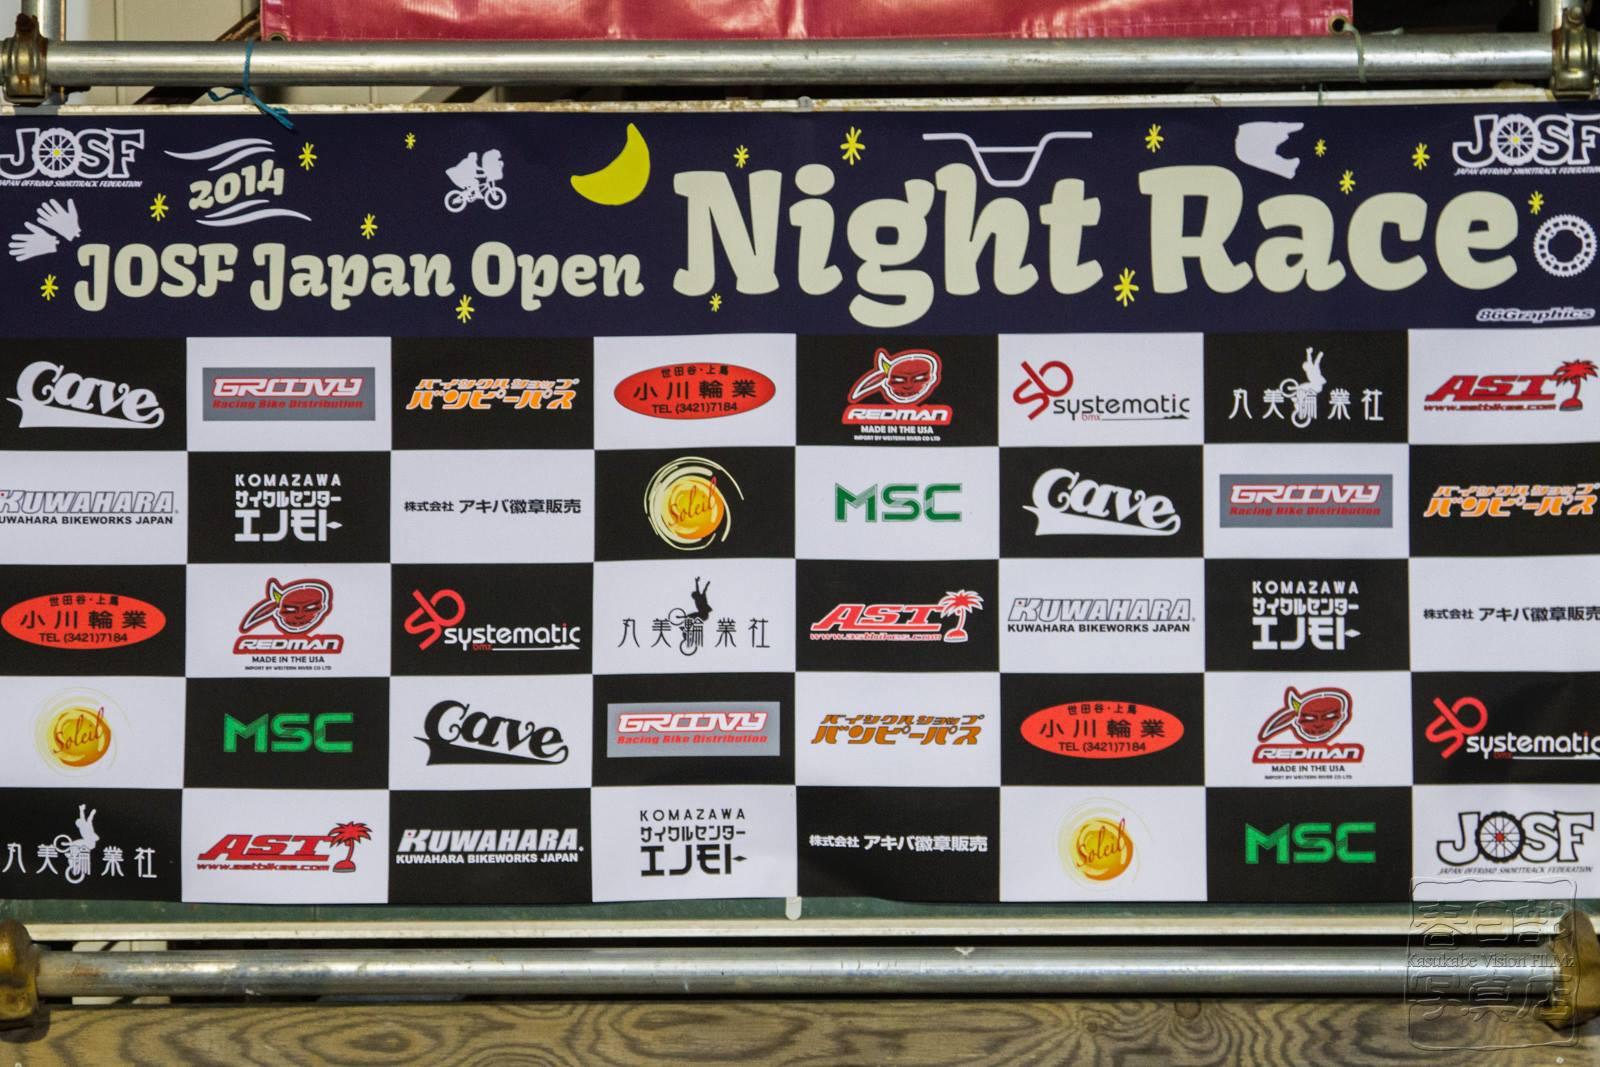 2014 JOSF JAPAN OPEN NIGHT RACE_b0136231_1657098.jpg